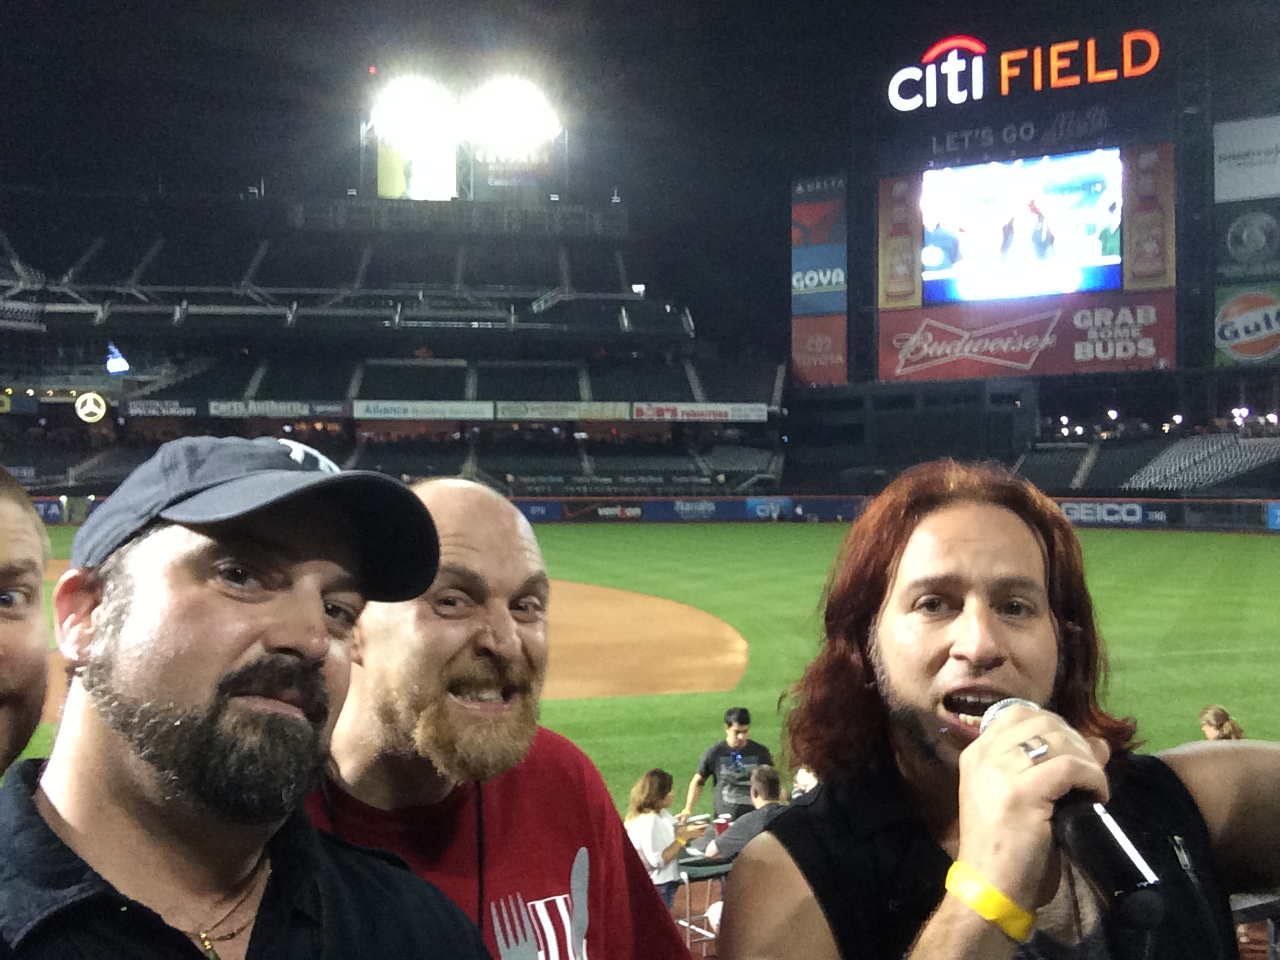 bacon_and_beer_classic_nyc_citi_field_2014_burger_conquest_winners_photos_information_9105